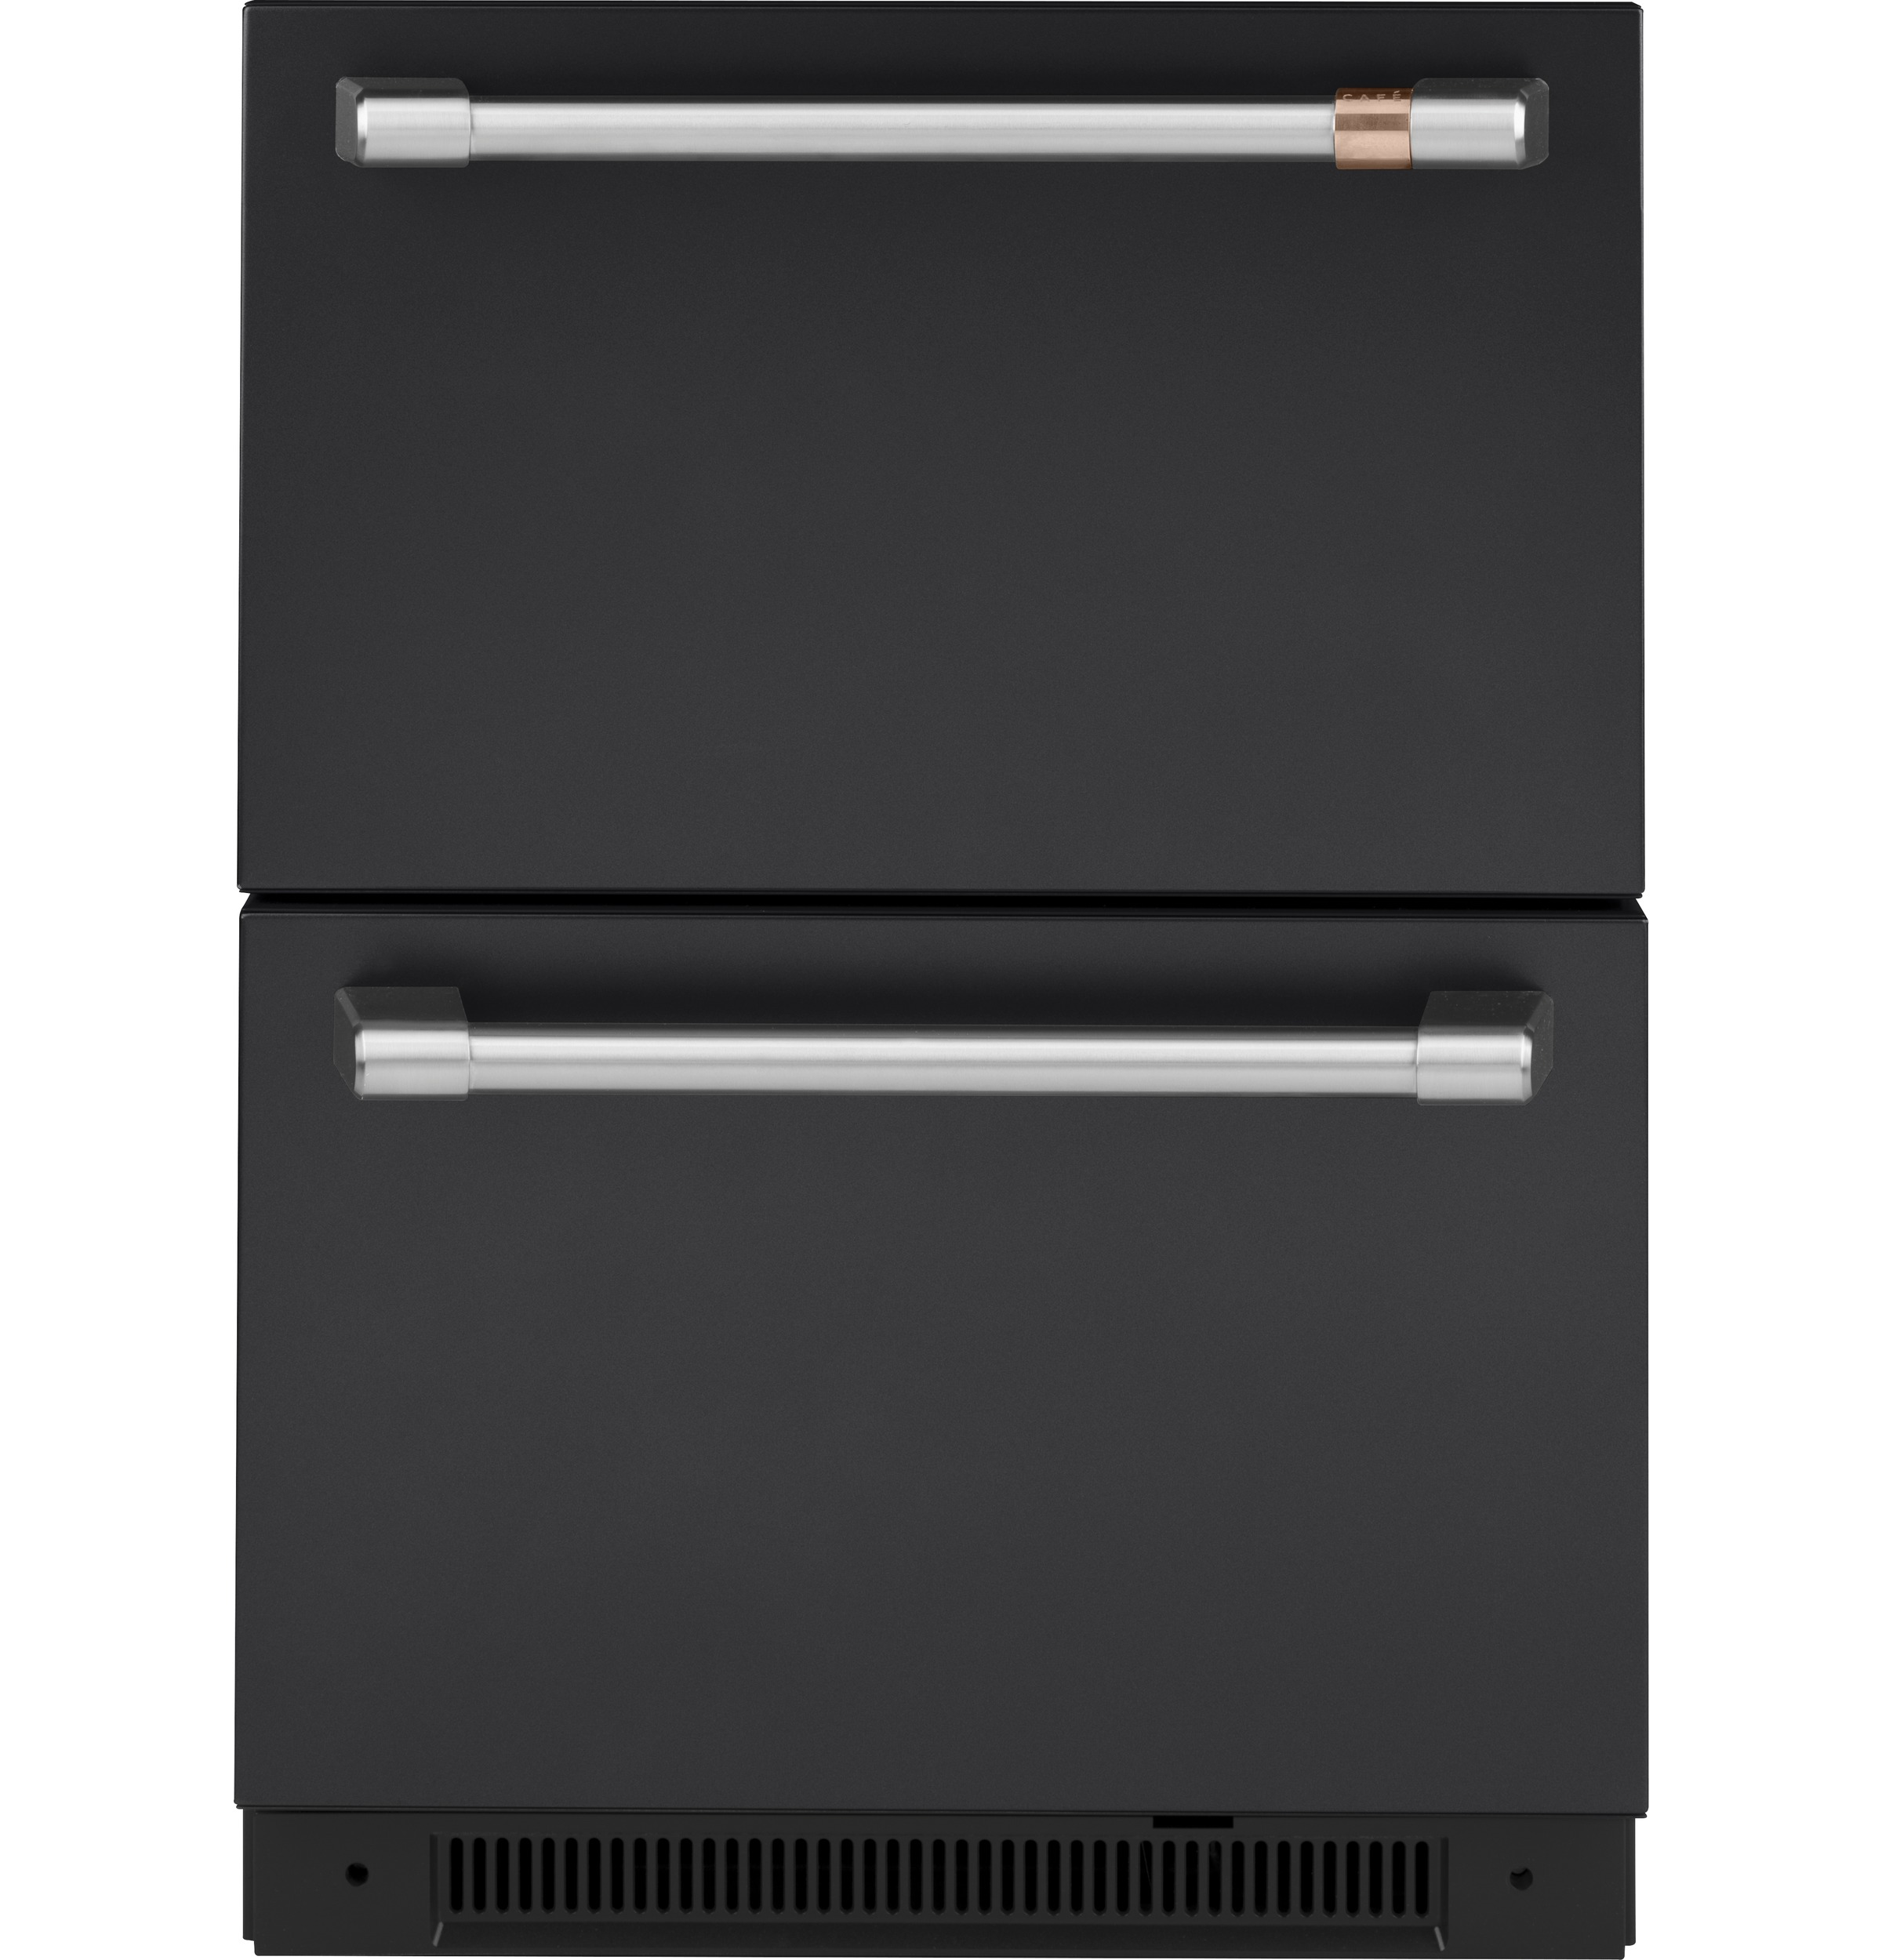 Cafe Café™ 5.7 Cu. Ft. Built-In Dual-Drawer Refrigerator